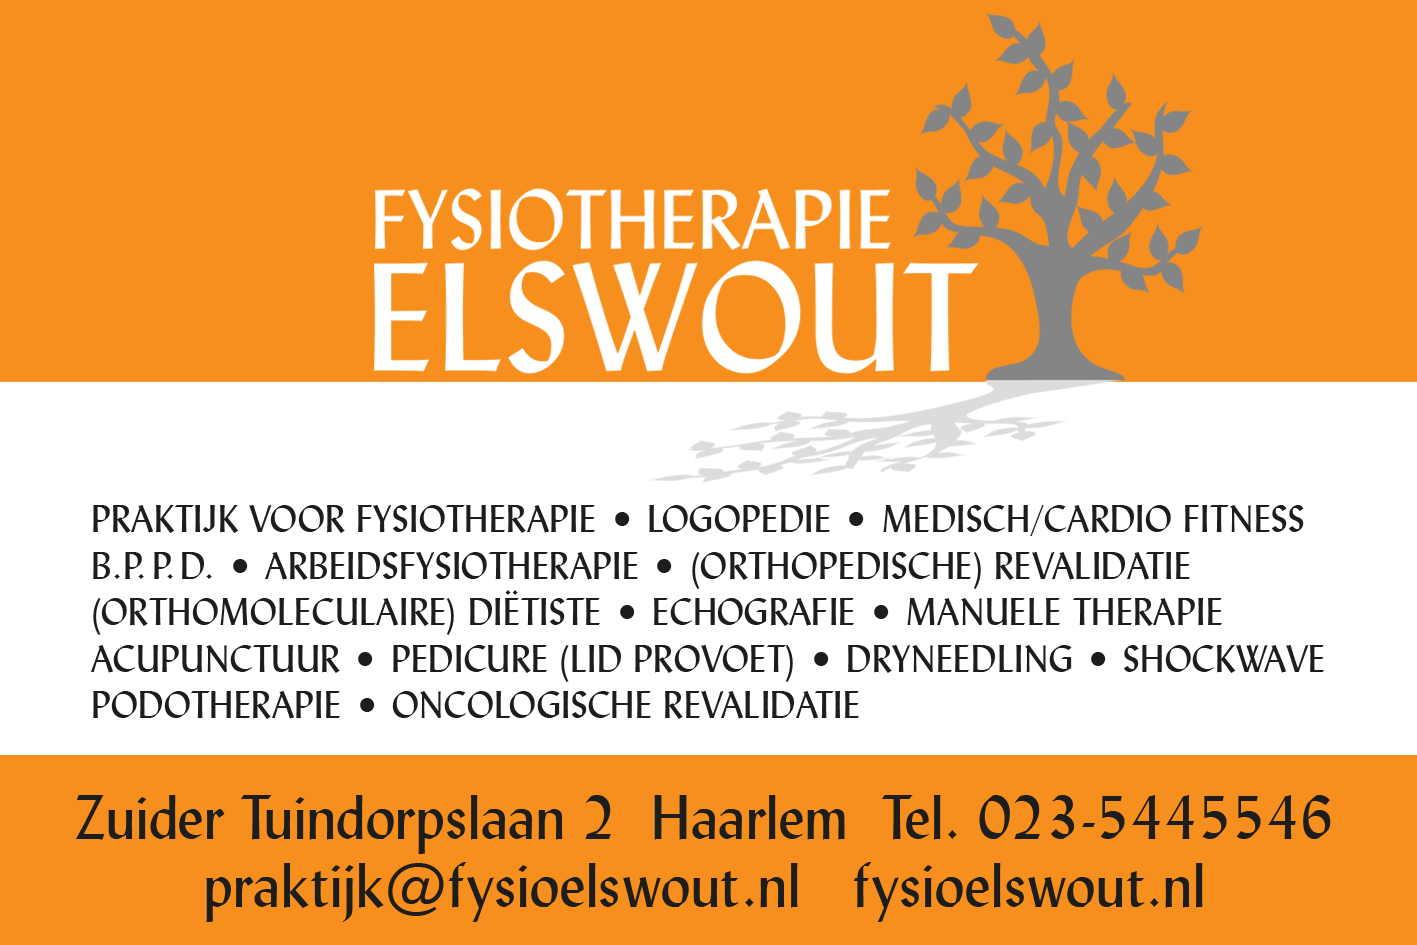 advertentie-elswout